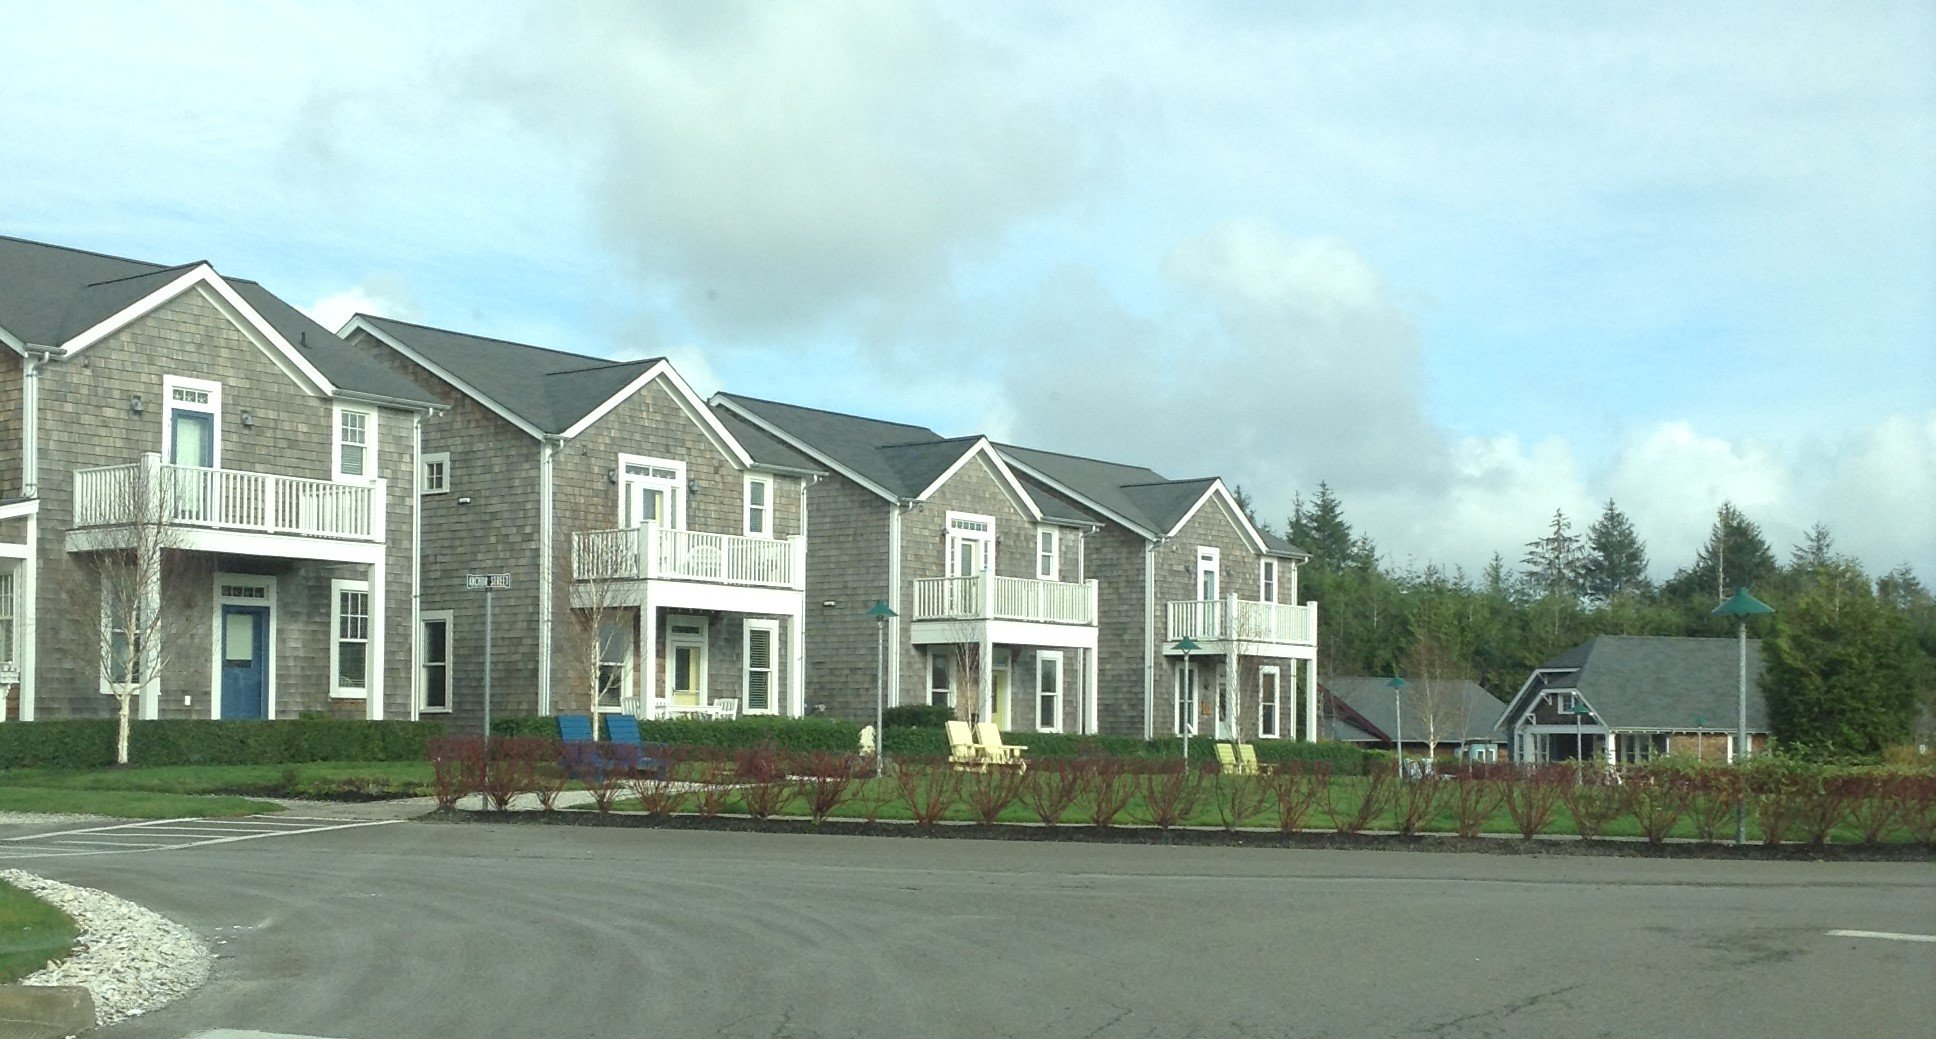 Town houses at Seabrook